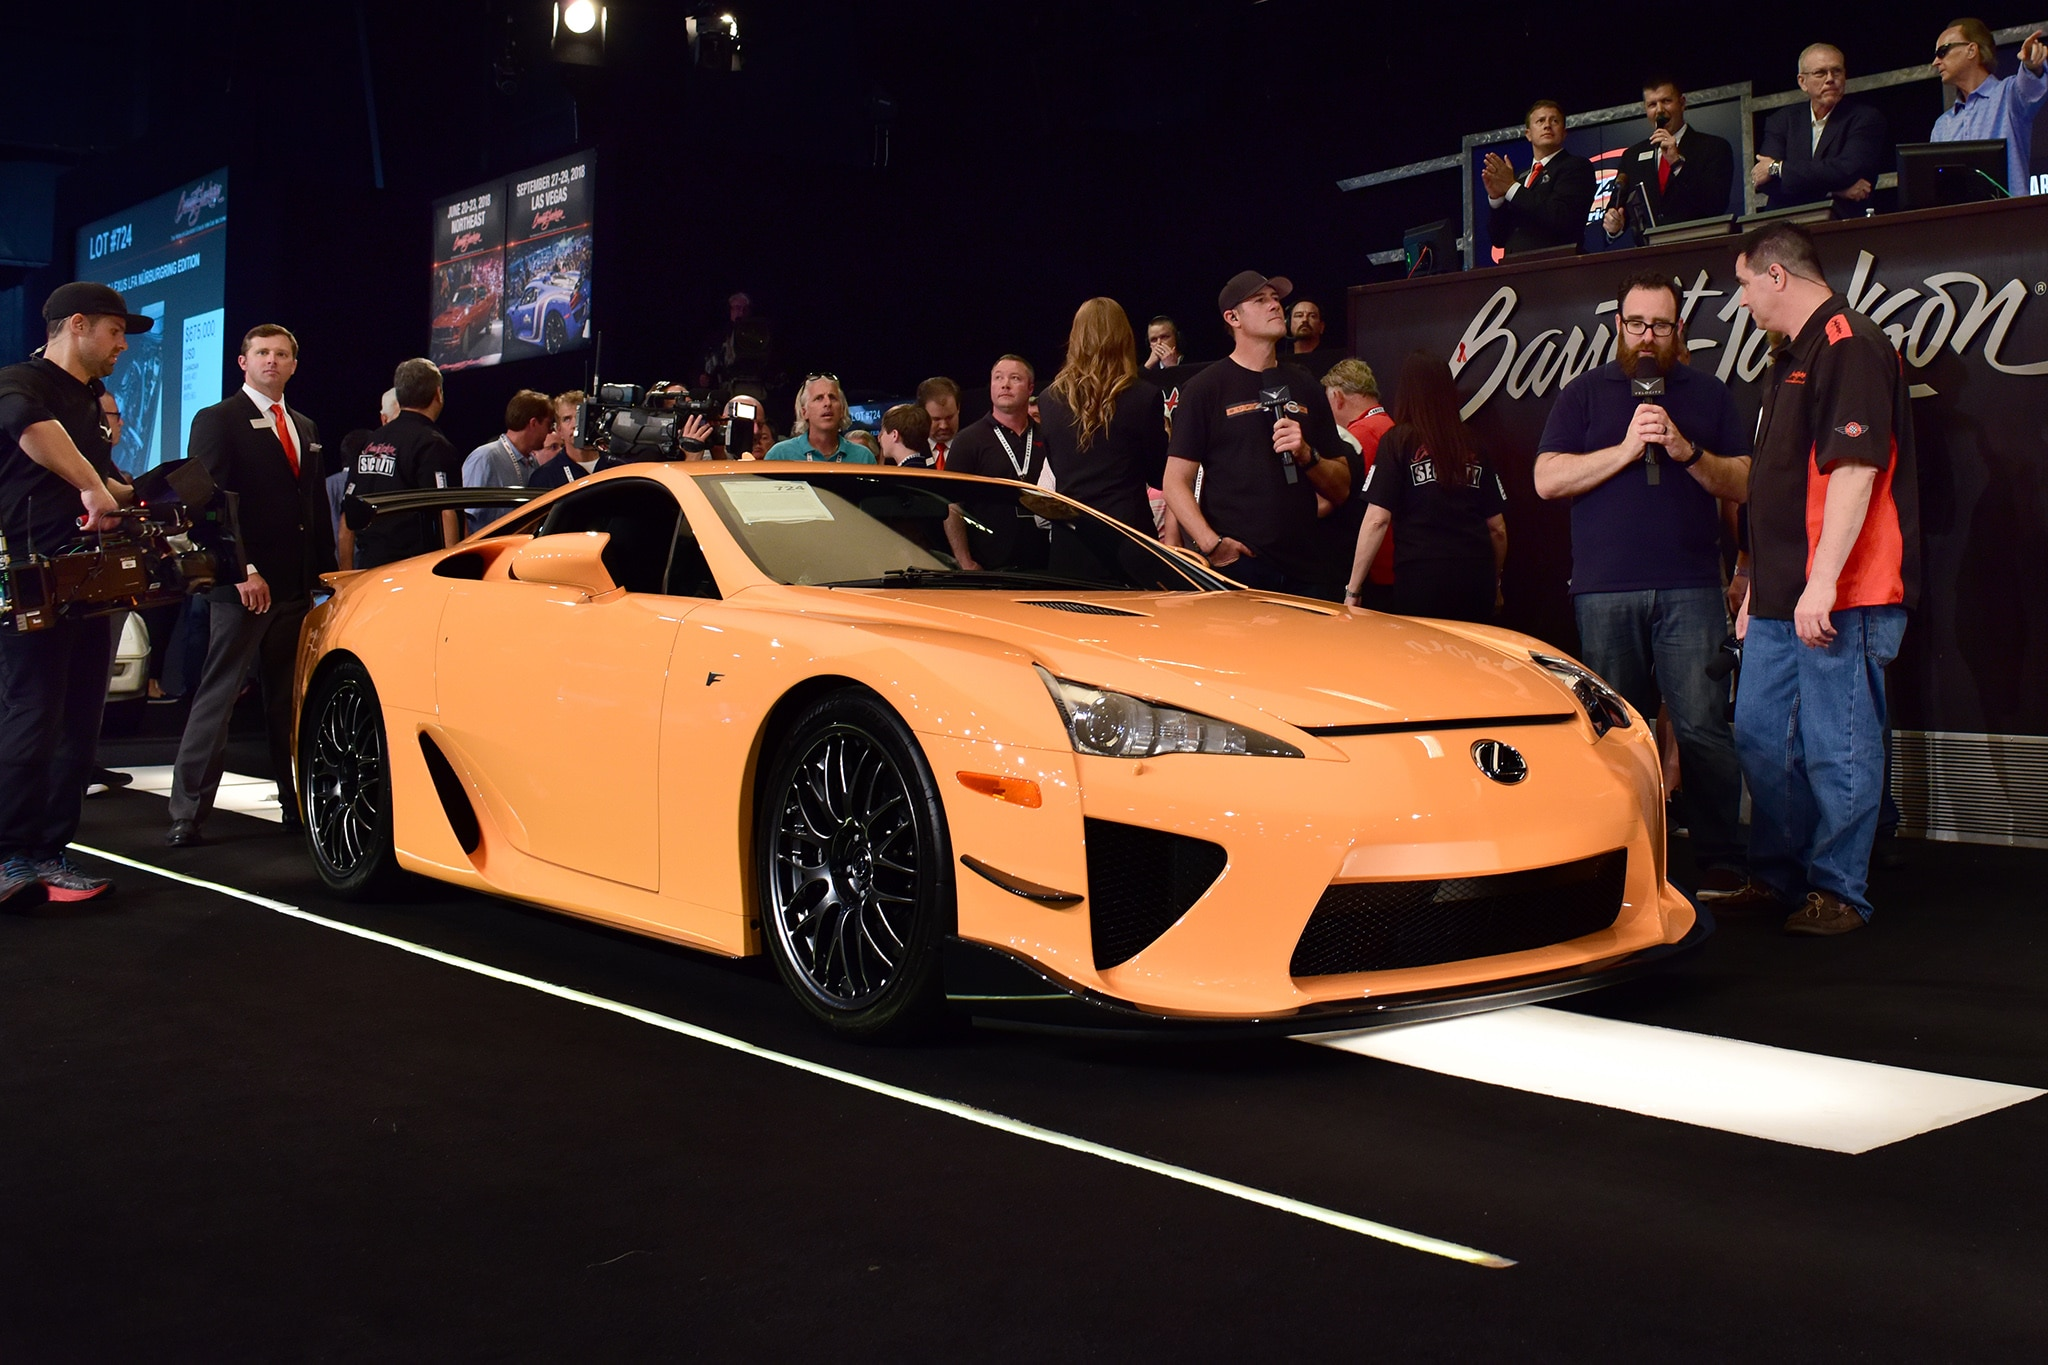 2012 Lexus LFA Nurburgring Edition Palm Beach 2018